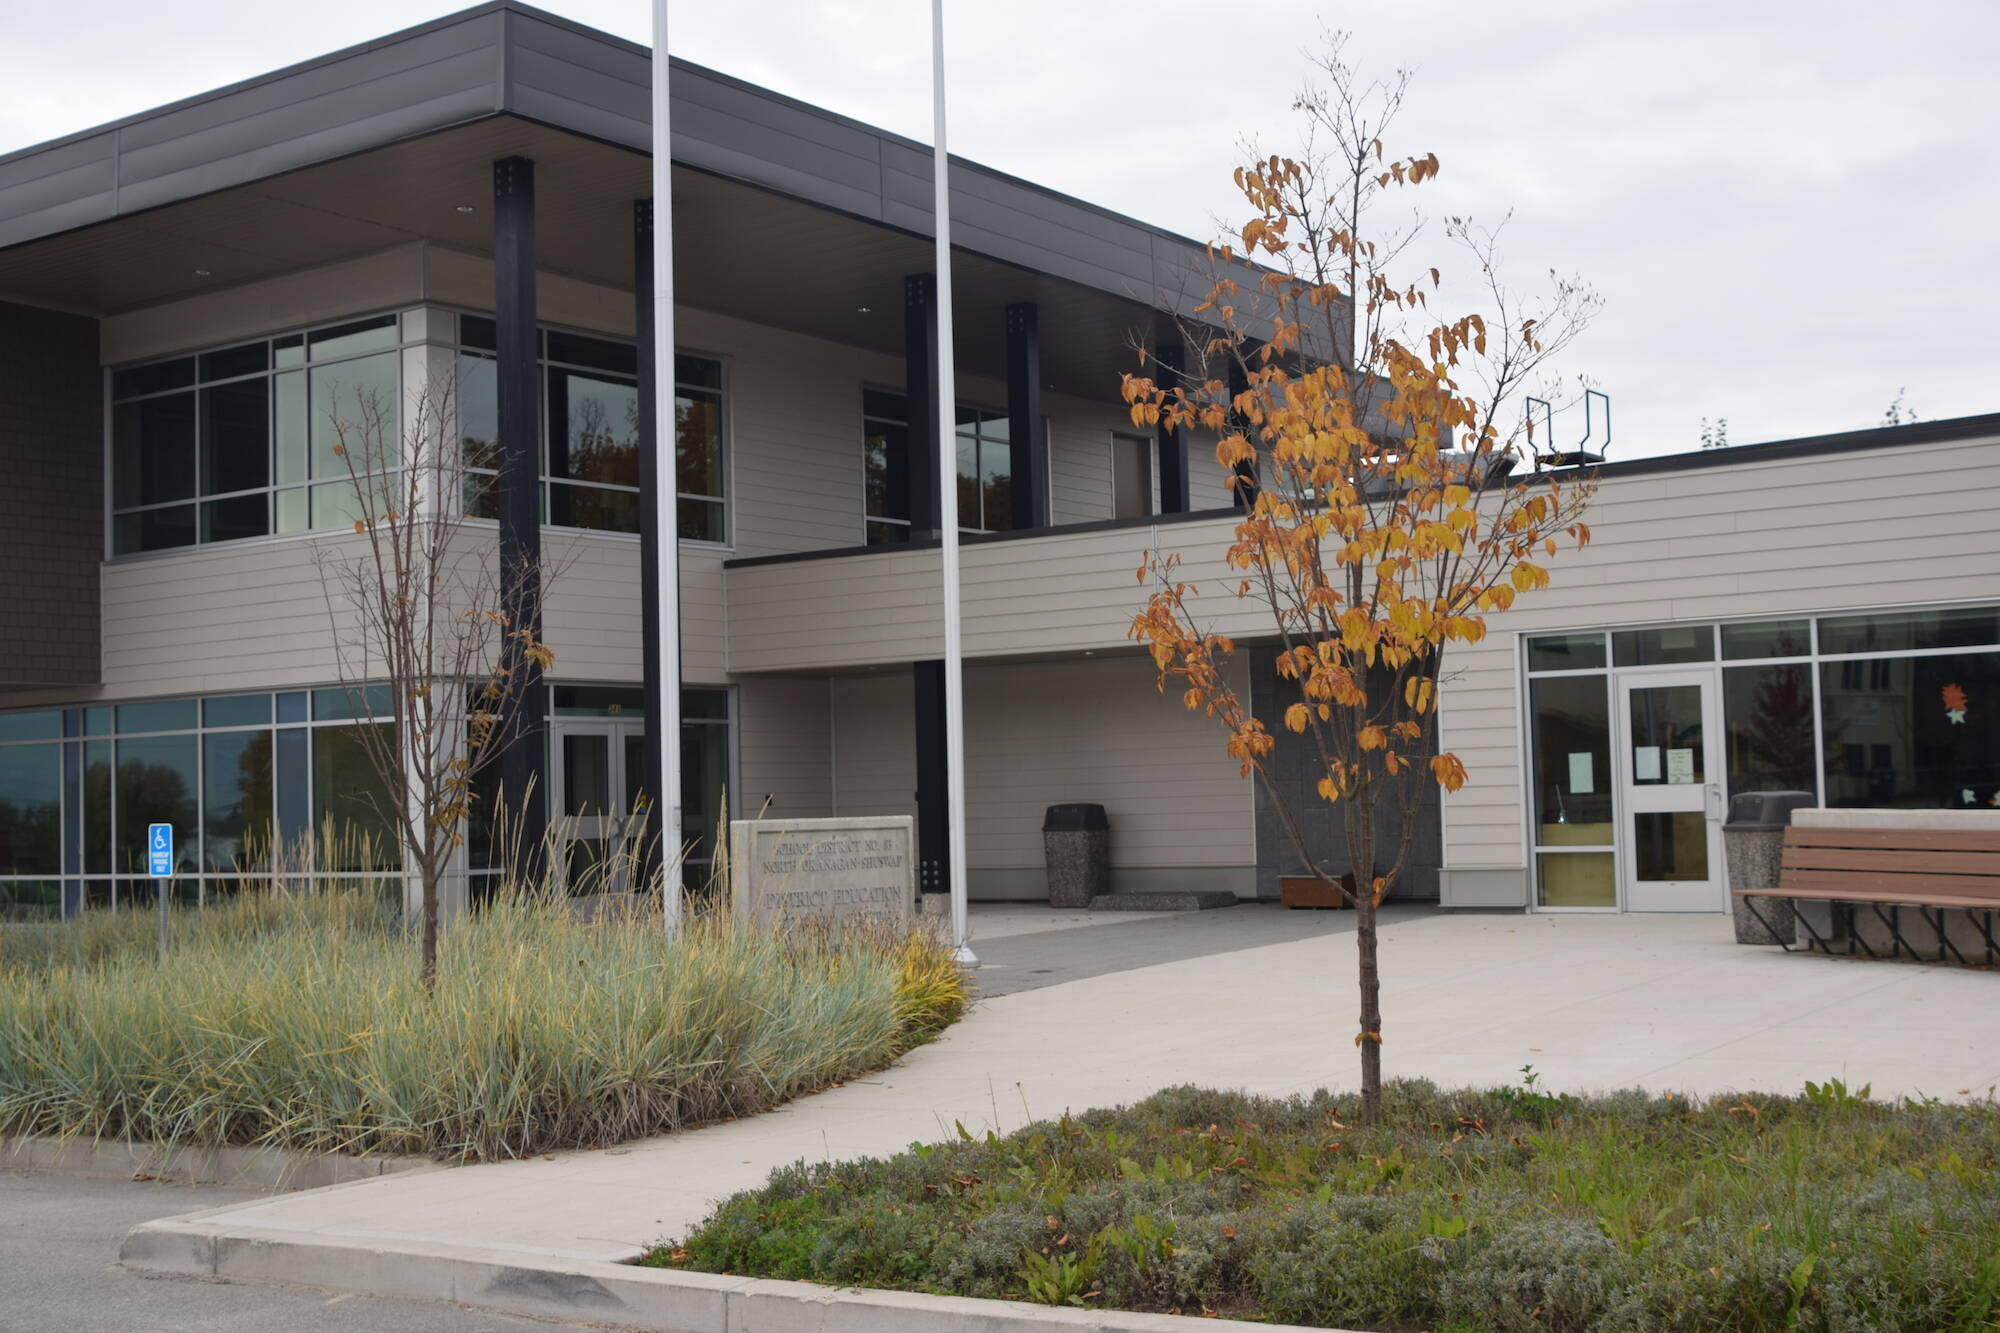 People opposed to vaccinations and masking entered schools in and around Salmon Arm on Sept. 17 They also recently protested at the School District 83 office. (Martha Wickett/Salmon Arm Observer)